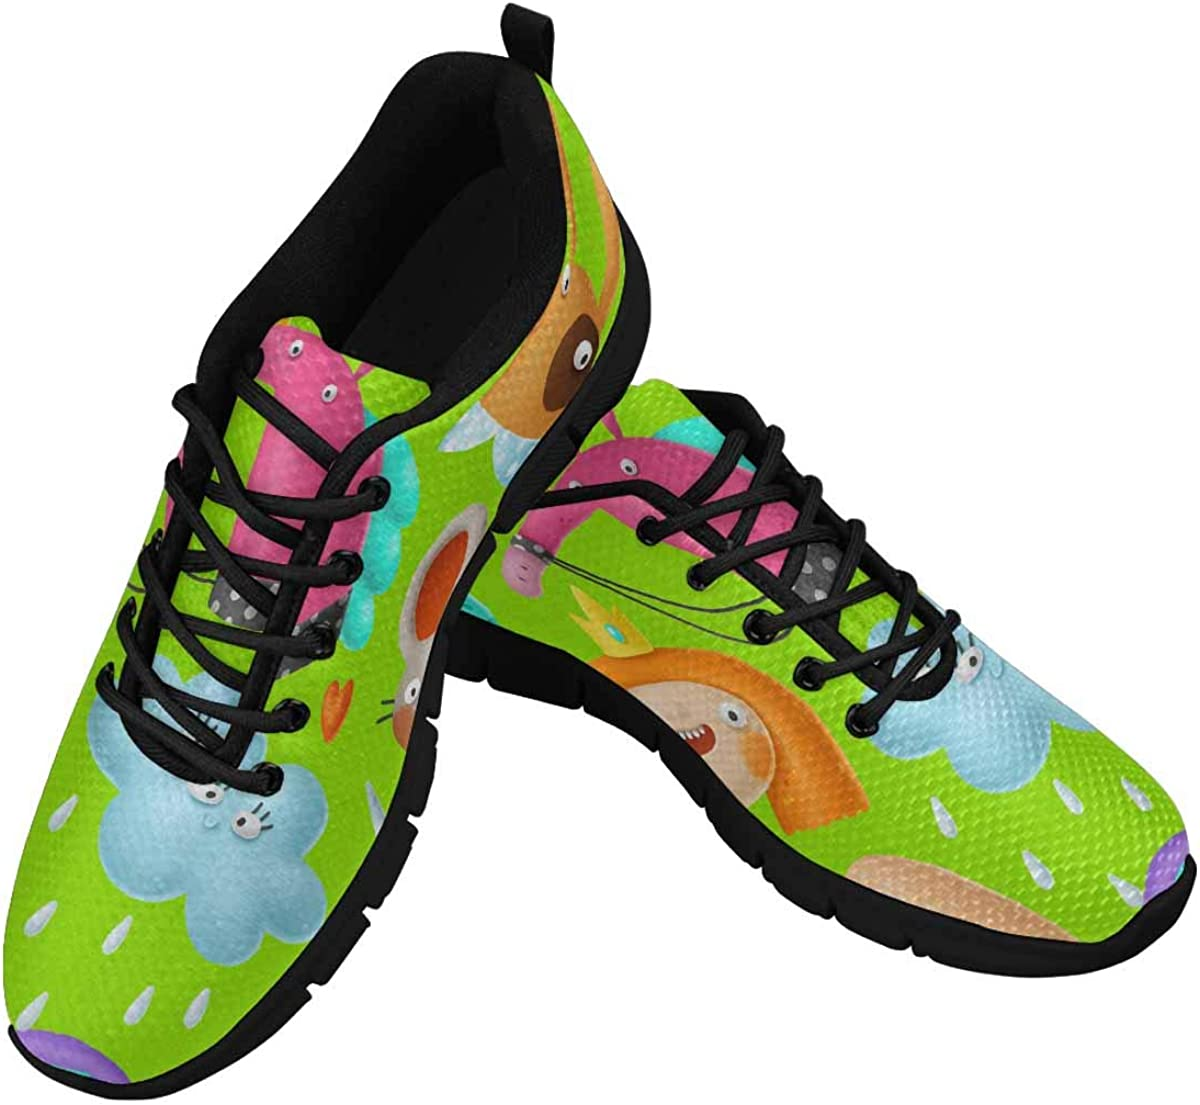 INTERESTPRINT Funny Cartoon Animals Women's Lightweight Athletic Casual Gym Sneakers